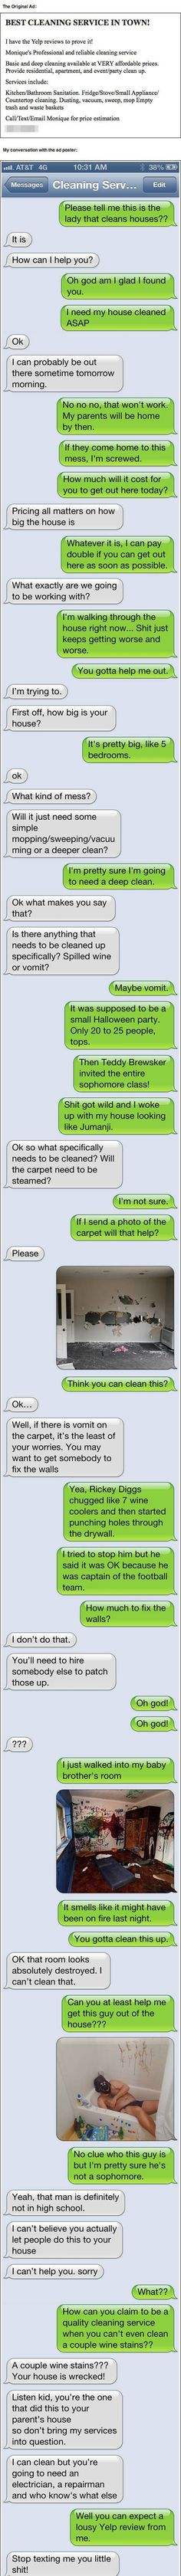 Texting pranks that will make jump and roll with laughter after reading these lmao!